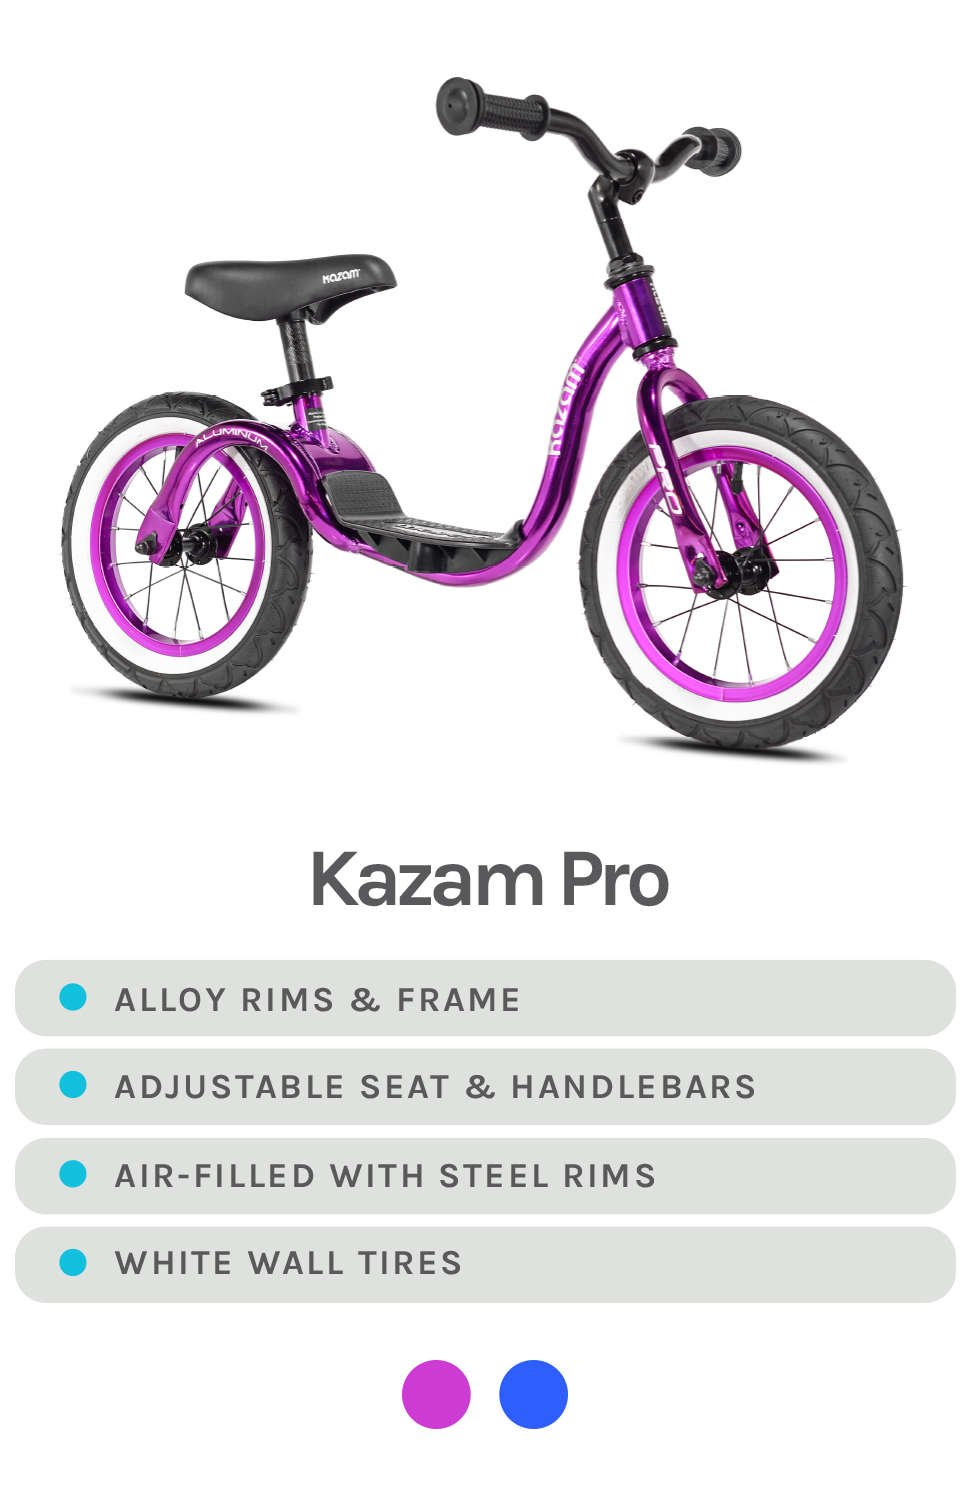 Reflective Purple Kazam Pro Featured - Specs - Alloy Rims & Frame, Adjustable Seat & Handlebars, Air-Filled w/ steel rims, and white wall tires - Available Colors in purple and blue